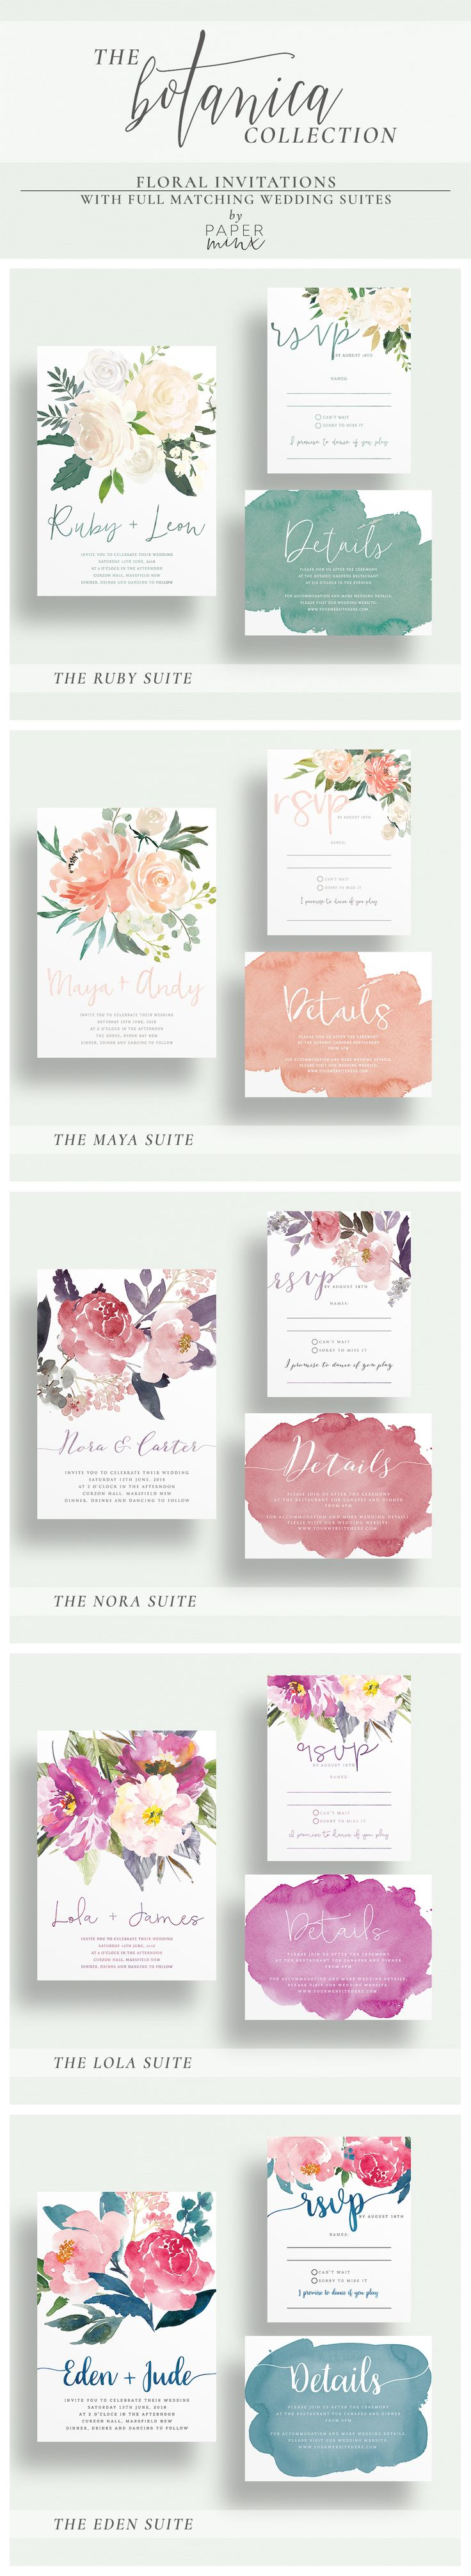 The Botanica Collection by Paper Minx Designs | Printed Wedding Suites available on our Etsy store: www.paperminxdesi... |   Purchase a sample to check out the cardstock & colour quality Instagram & Facebook: @paperminxdesigns